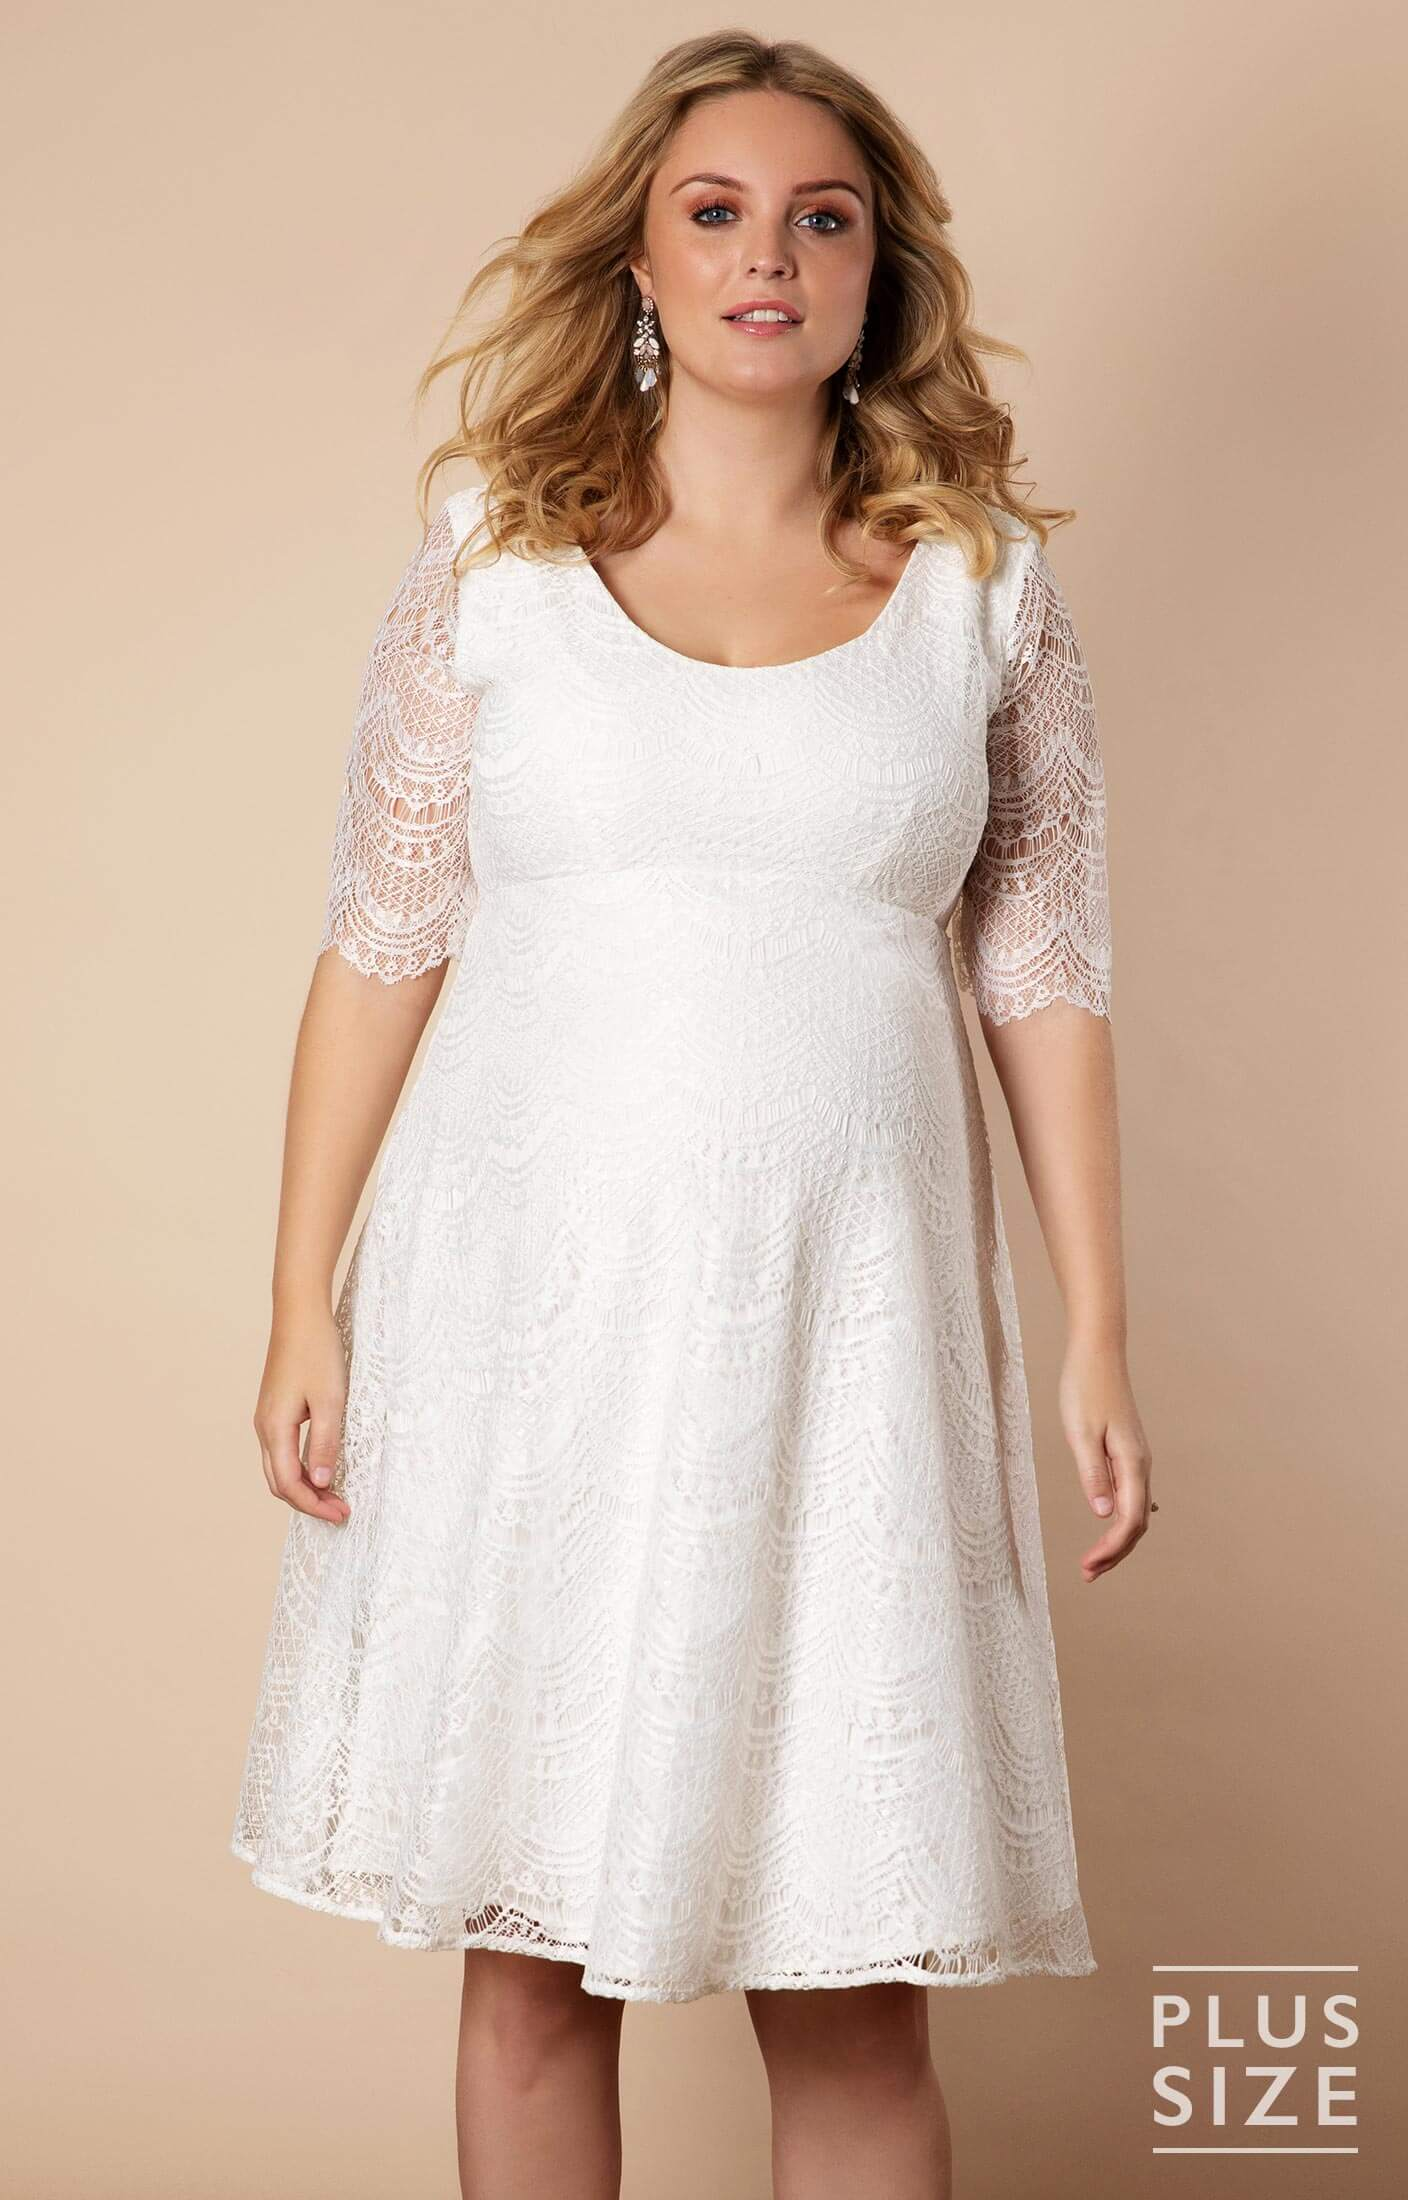 Verona Plus Size Maternity Wedding Dress Short Ivory White - Maternity  Wedding Dresses, Evening Wear and Party Clothes by Tiffany Rose